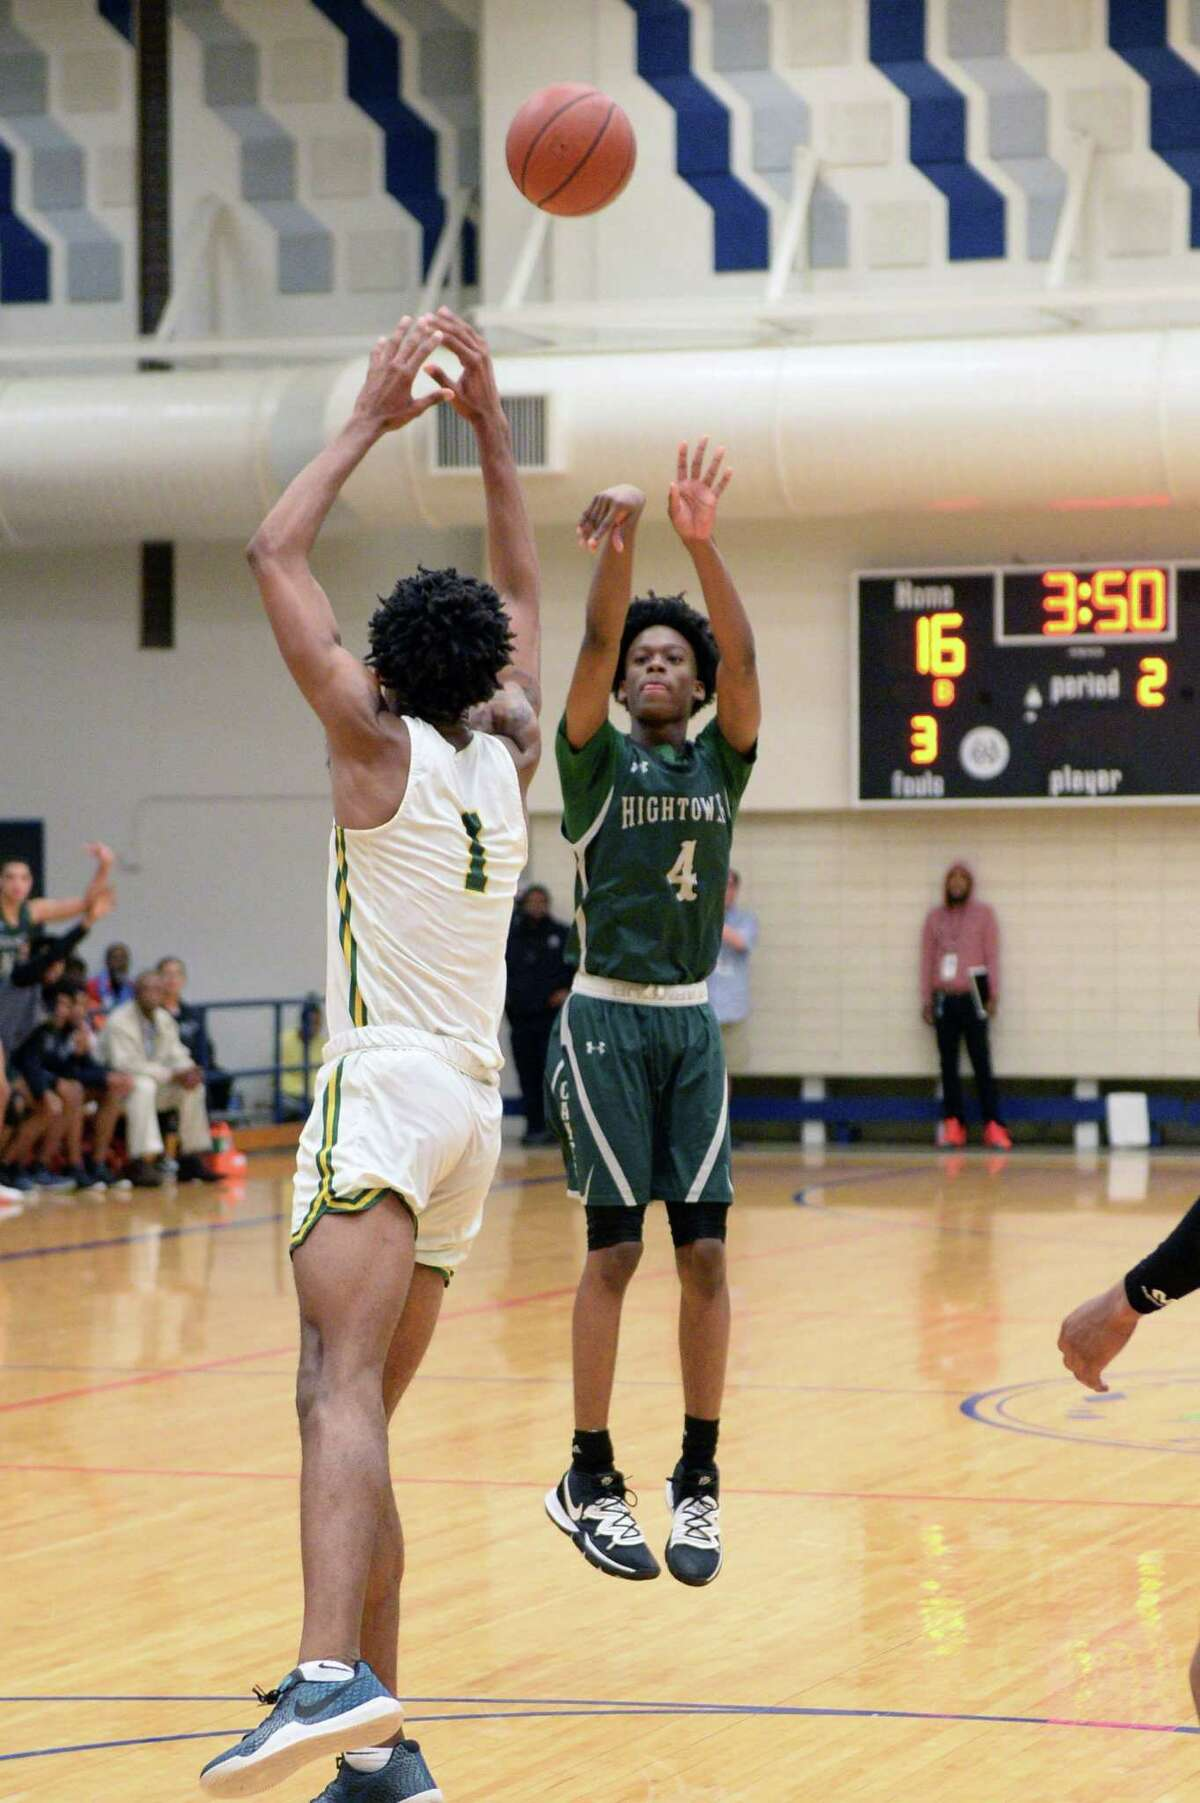 Jacory Chatman (4) of Hightower attempts a 3-point shot over Joshua Farmer (1) of Sharpstown during the first half of a 5A Region III Bi-District playoff game between the Hightower Hurricanes and the Sharpstown Apollos on Monday, February 24, 2020 at Butler Fieldhouse, Houston, TX.